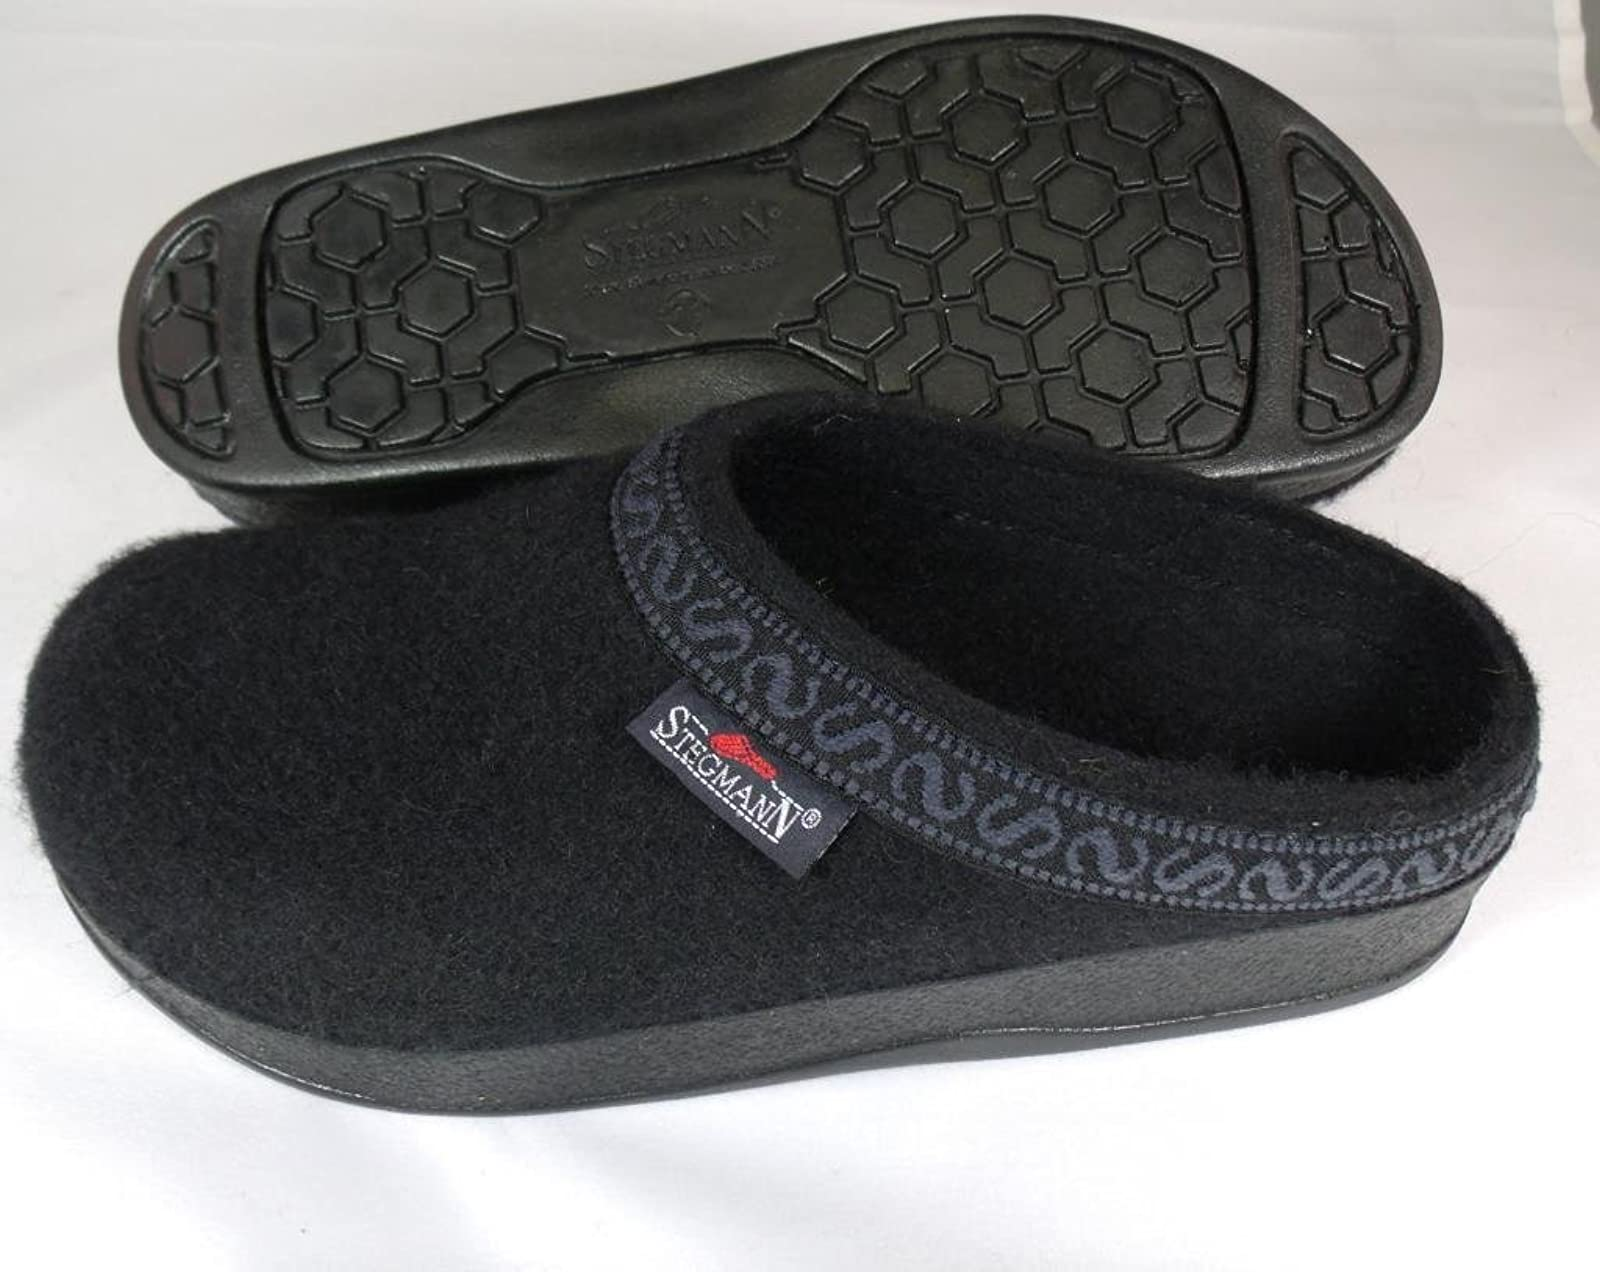 Women's Wool-Flex clog L108p Black Graphite - 3